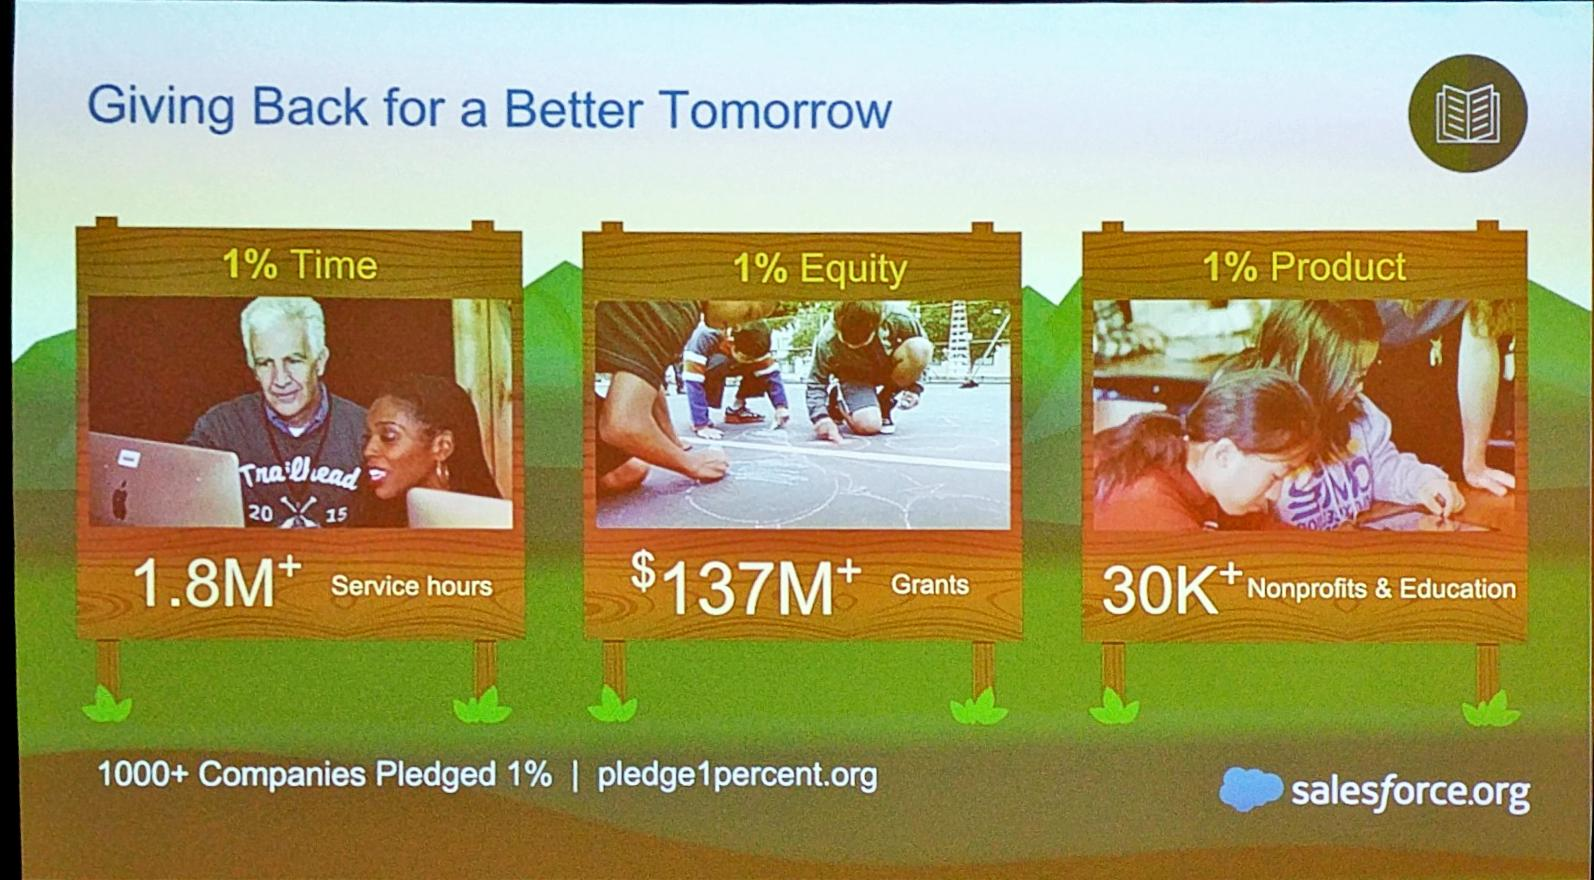 And 1:1:1 works for @salesforce  - 1.8M service hours  - $137M grants - 30k nonprofits / education institutions  #SalesforceAR https://t.co/eTCezNKncR